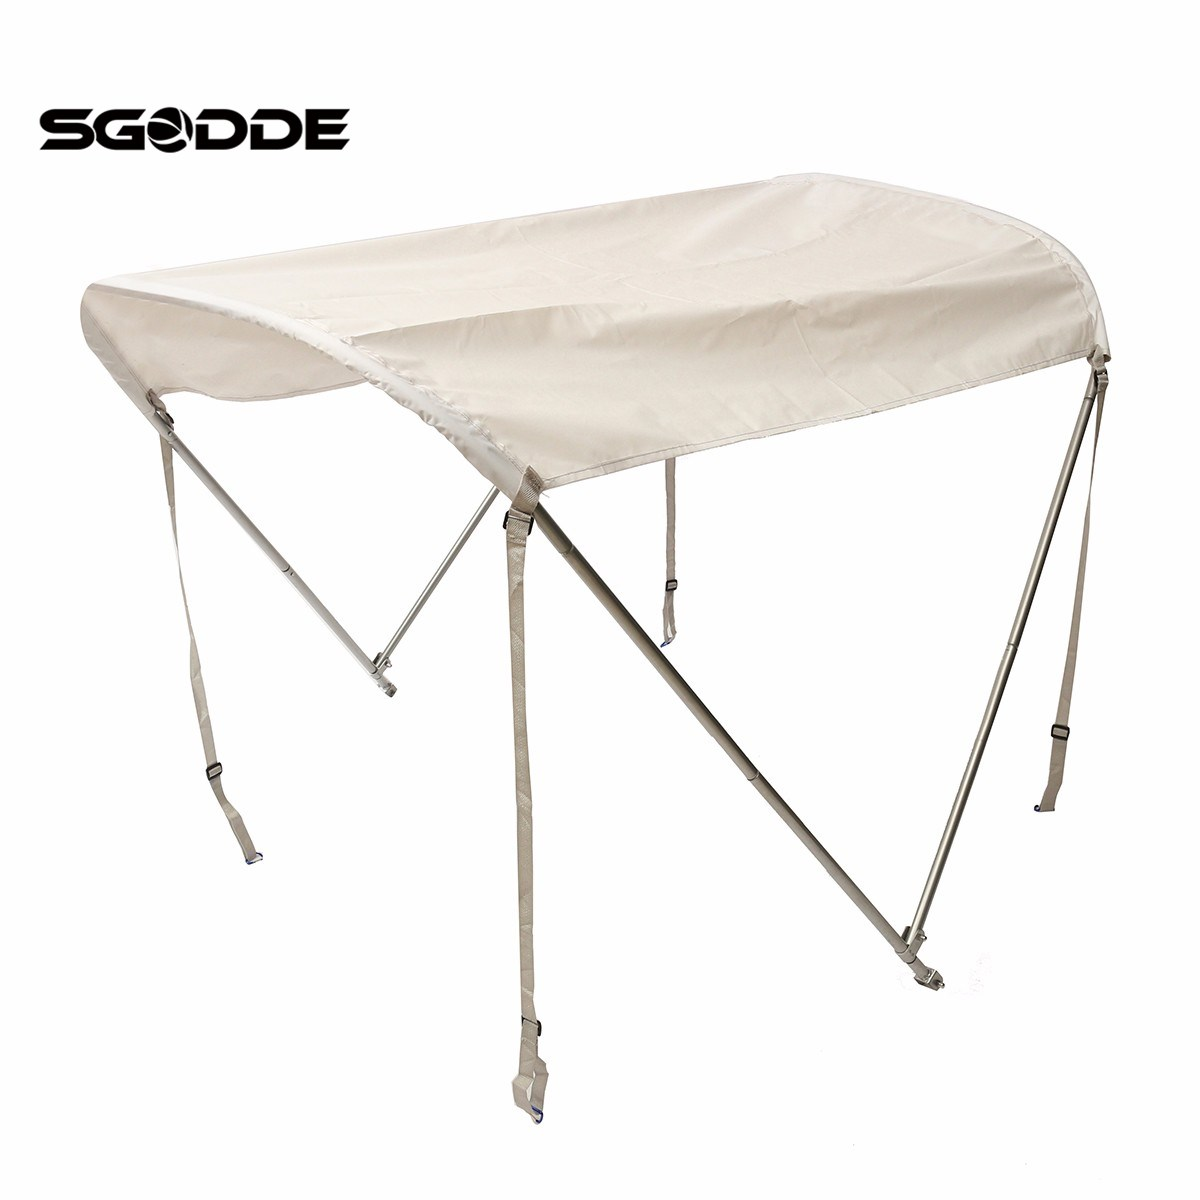 SGODDE 2 Bow Anti-UV Canopy Top Cover 46Hx5'L + Aluminum Tubes Straps For 45-63 Boat Outdoor inflatable boat Cover Tools